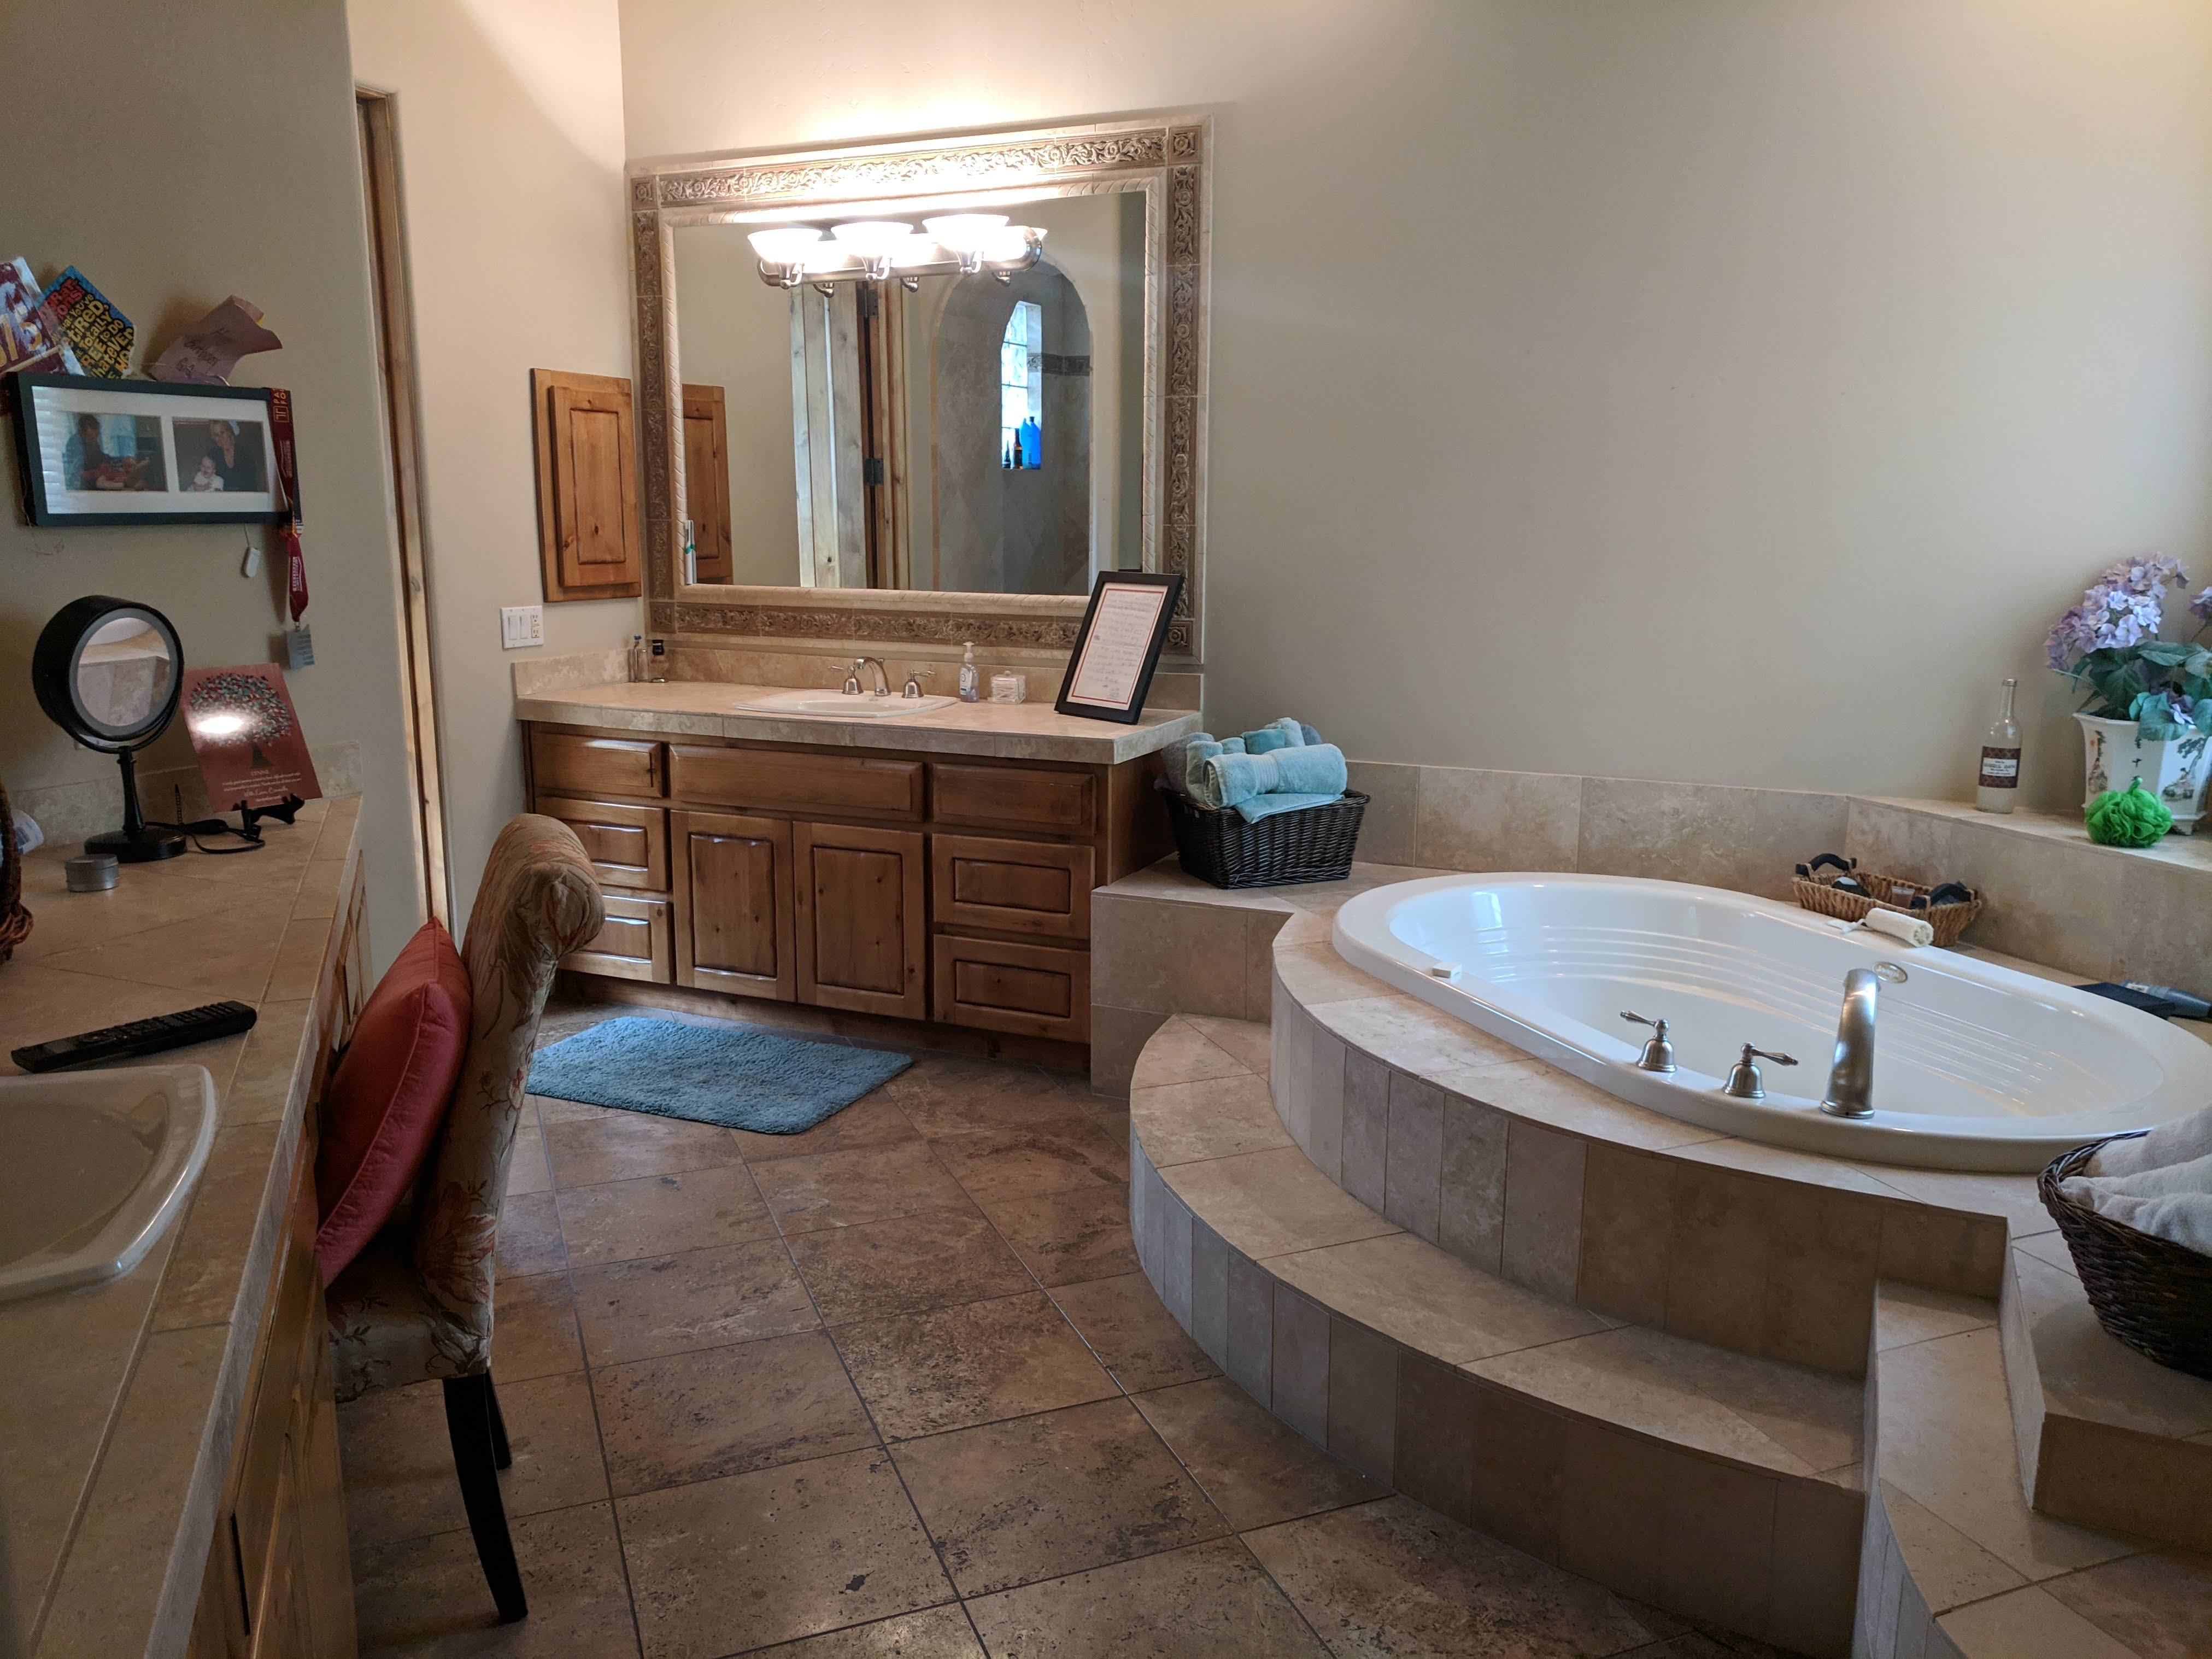 The spacious master suite features a raised soaking tub and a his and her vanity.